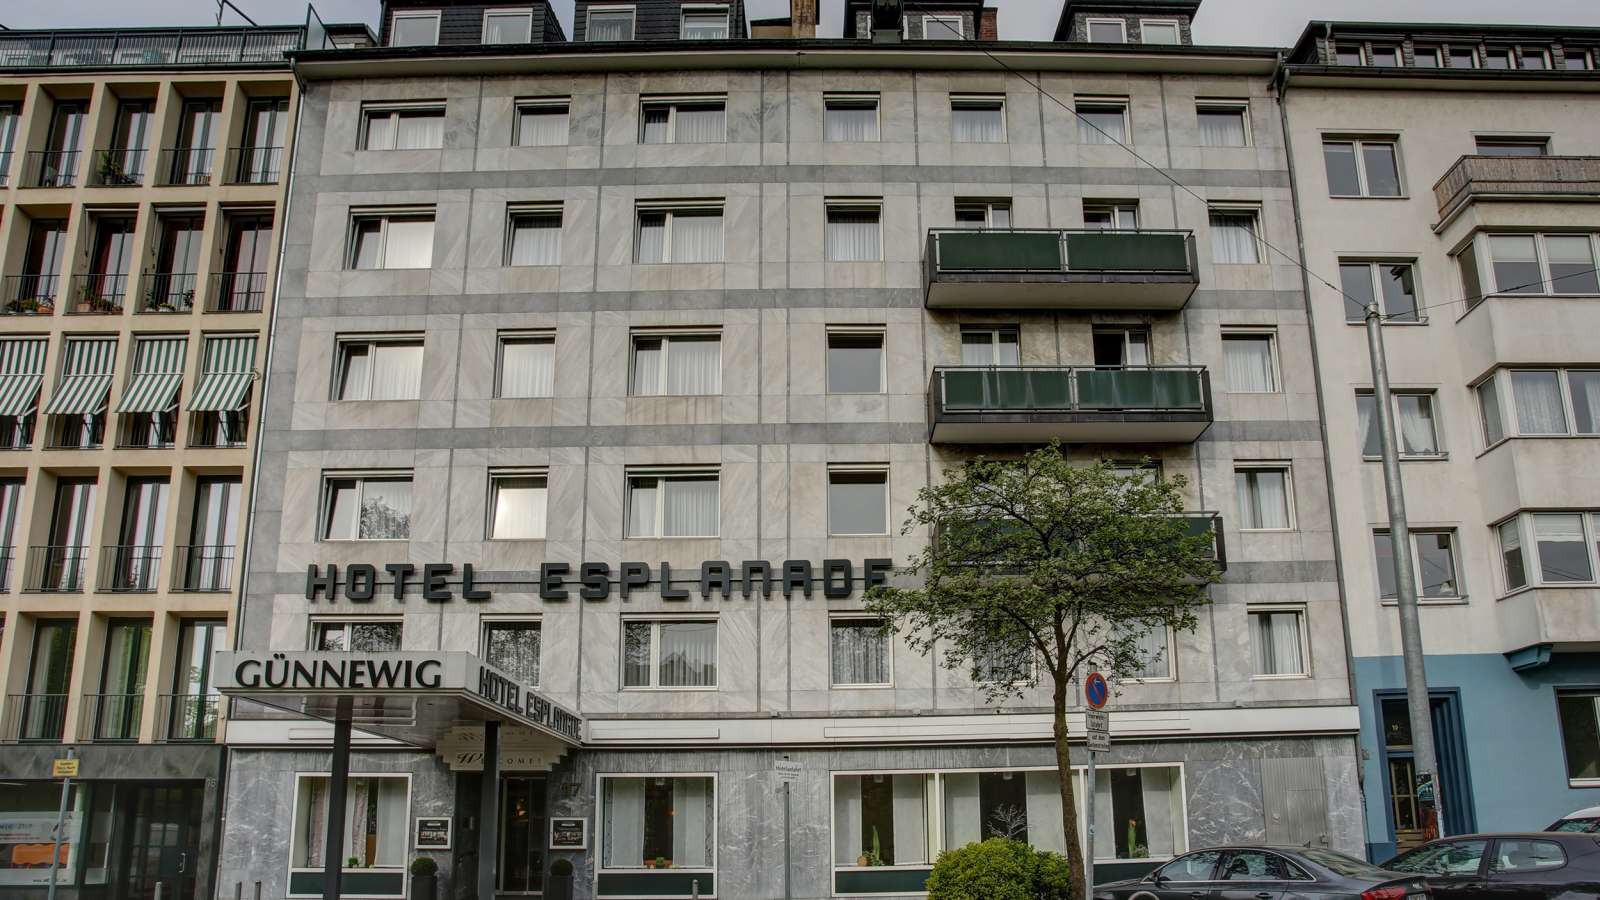 Exterior of the Centro Hotel Esplanade in Düsseldorf